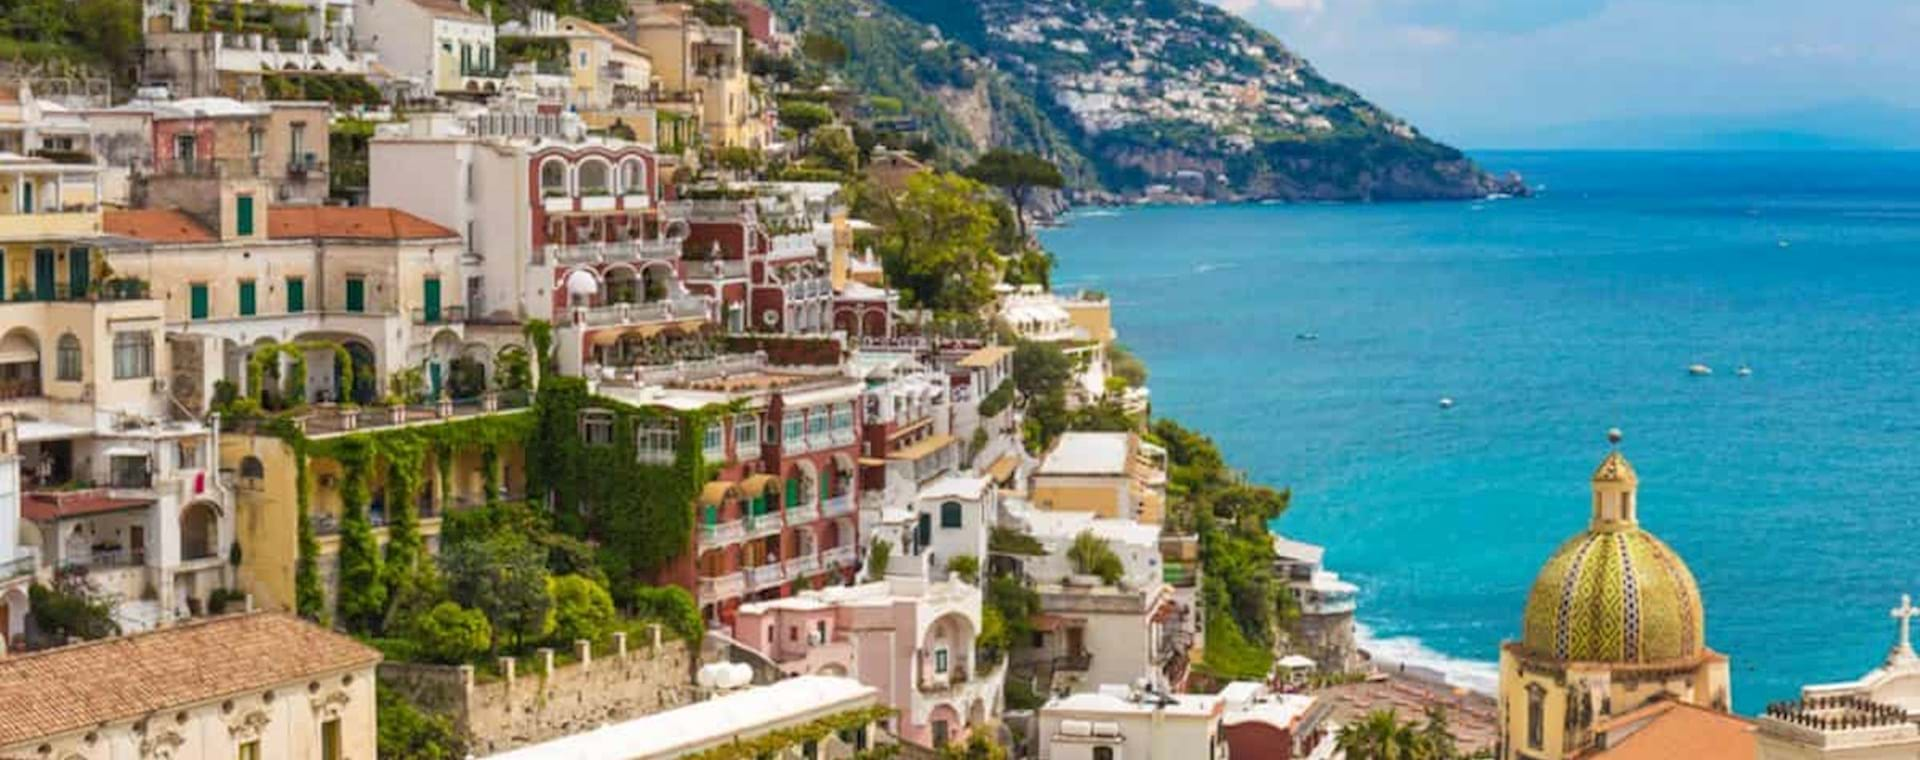 beautiful view of Positano